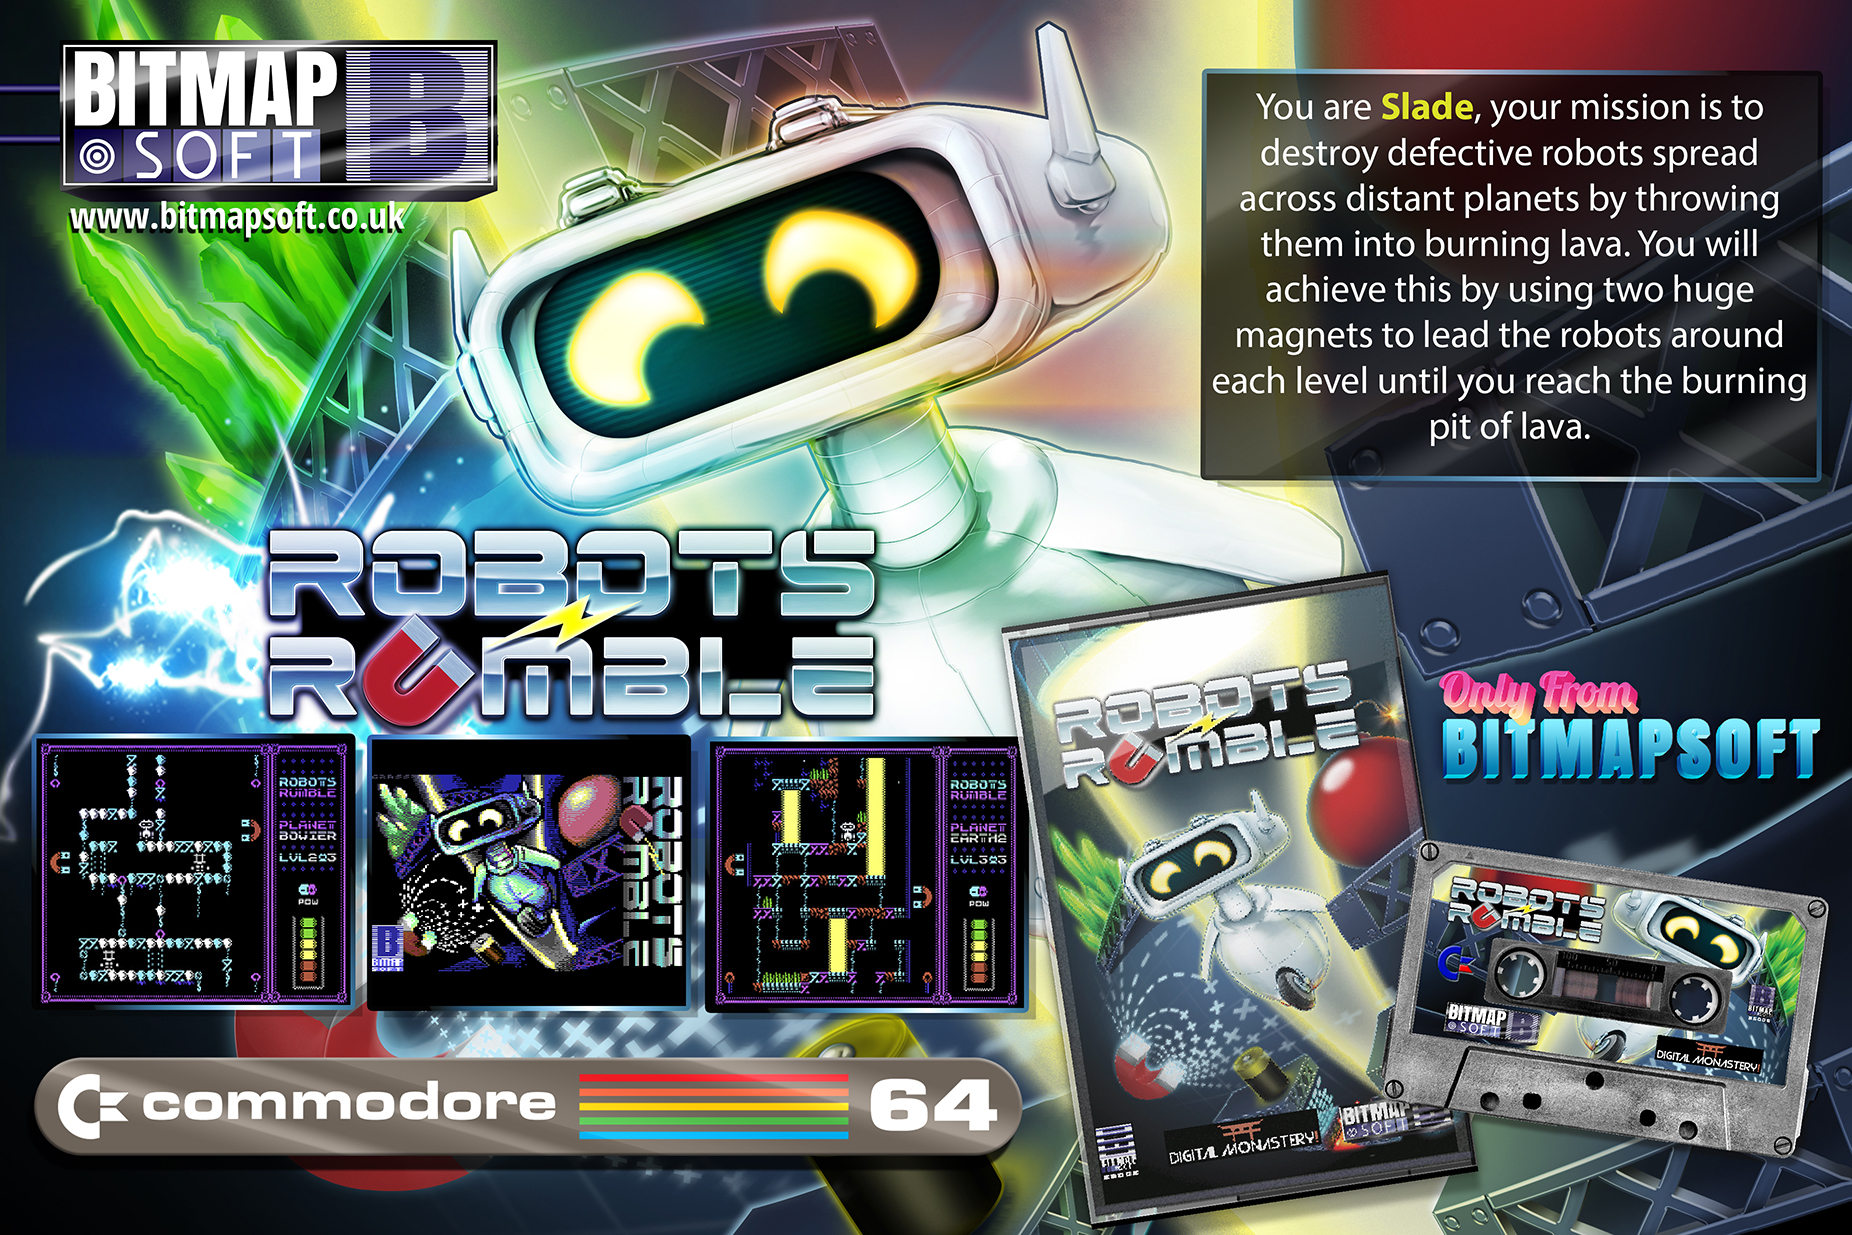 As you can see, BitmapSoft releases gorgeous physical versions of the games. And the promotional flyer by Darren is breathtaking.